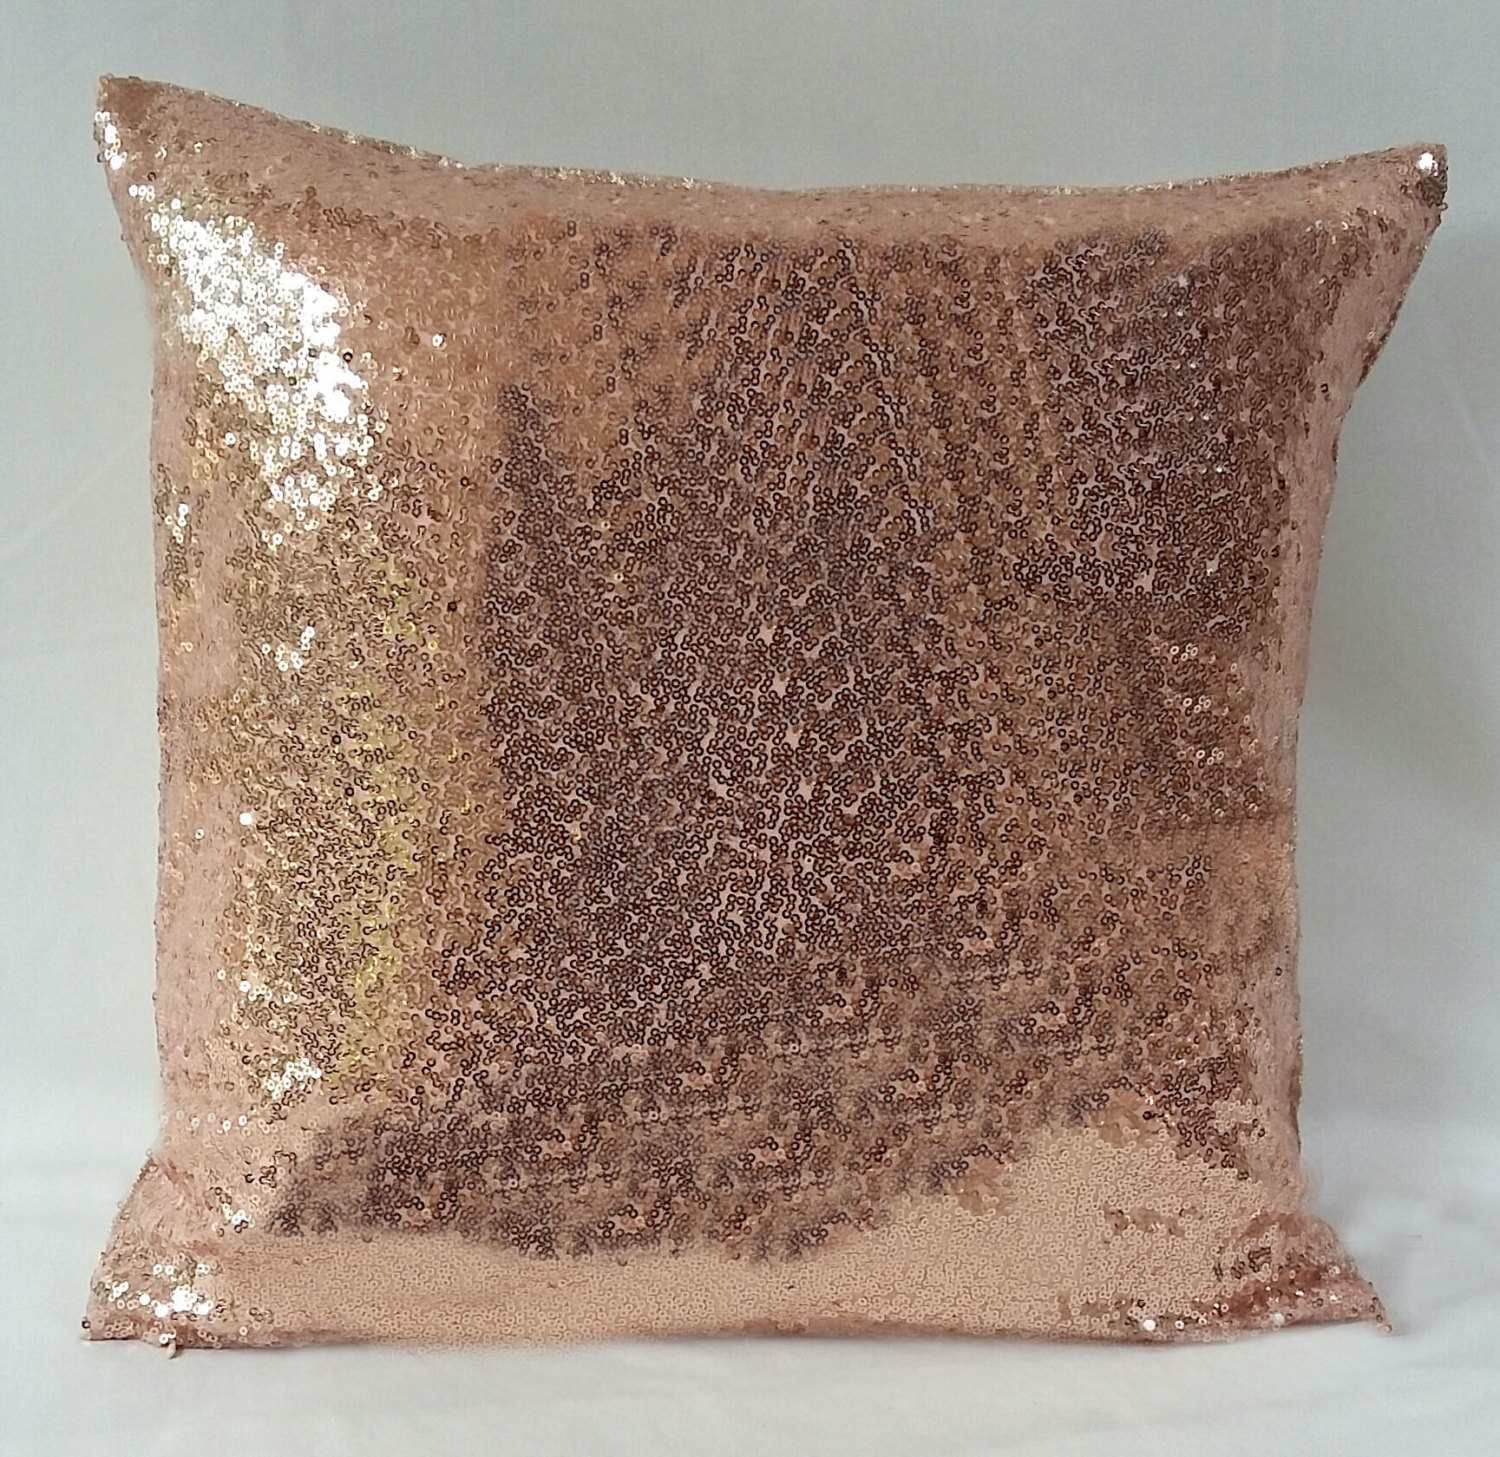 Image of: Rose Gold Pillow Design